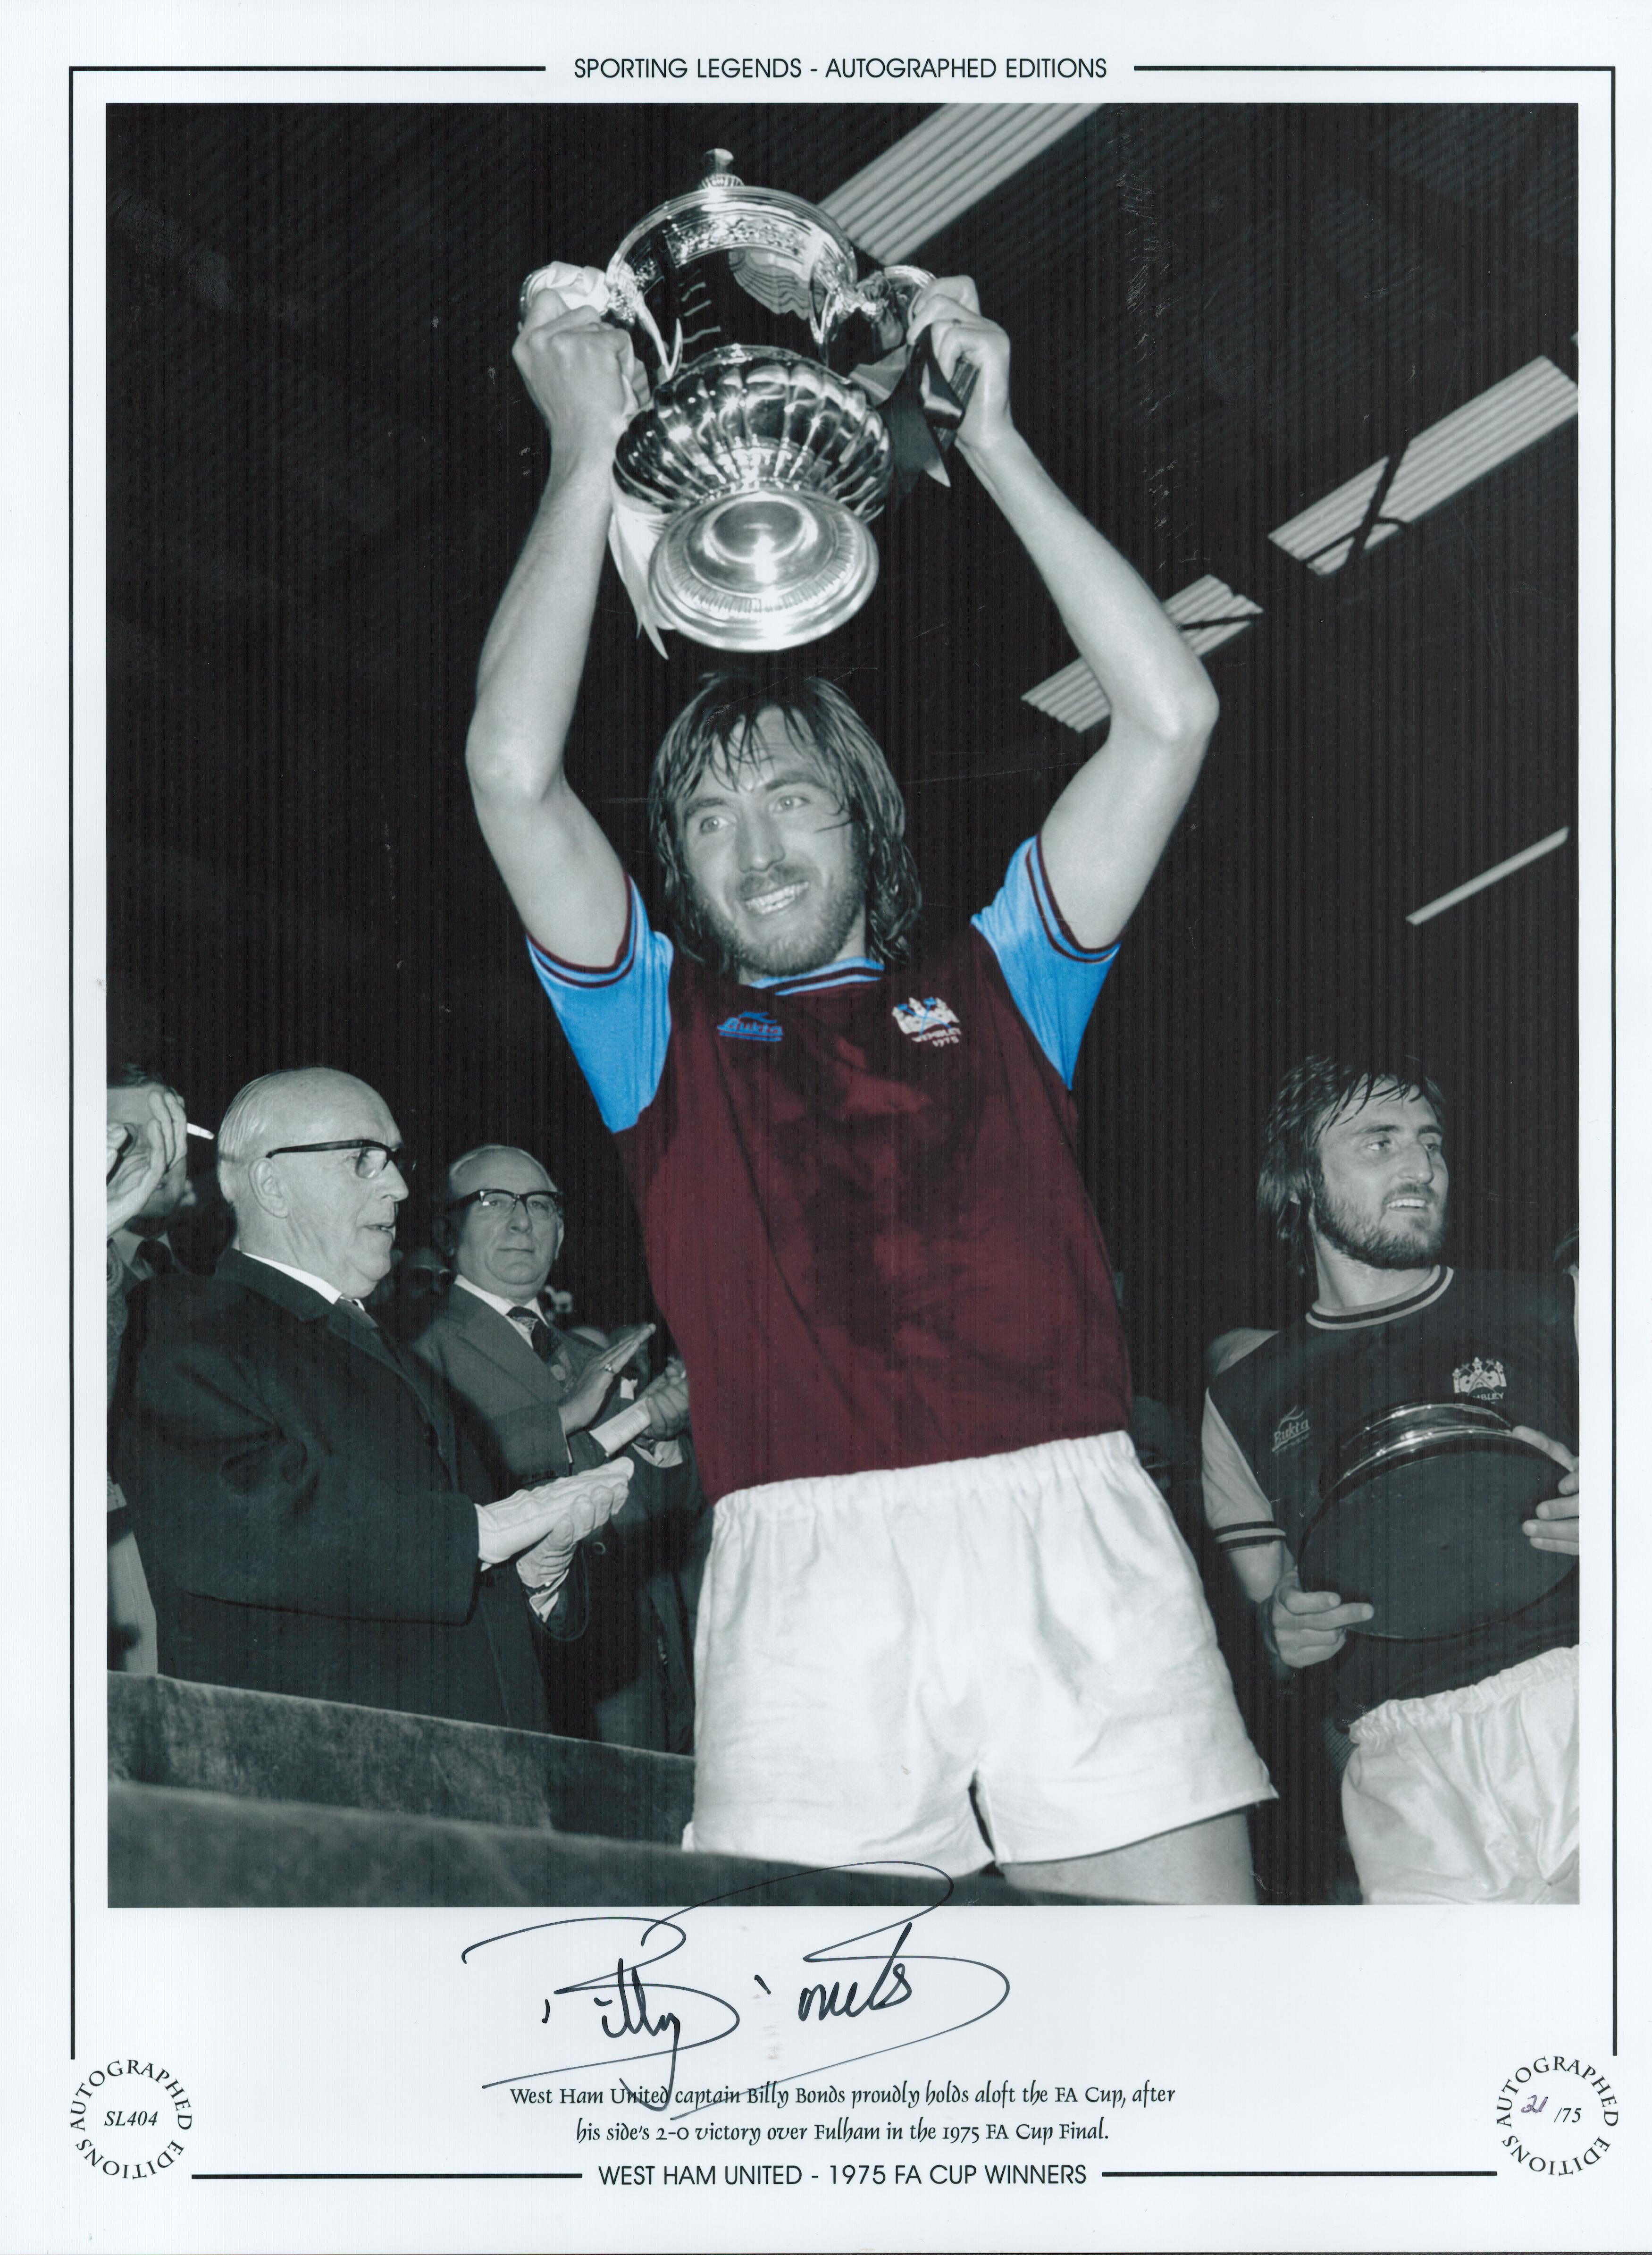 Football. Billy Bonds Signed 16x12 black and white photo with claret and blue shirt. Autographed